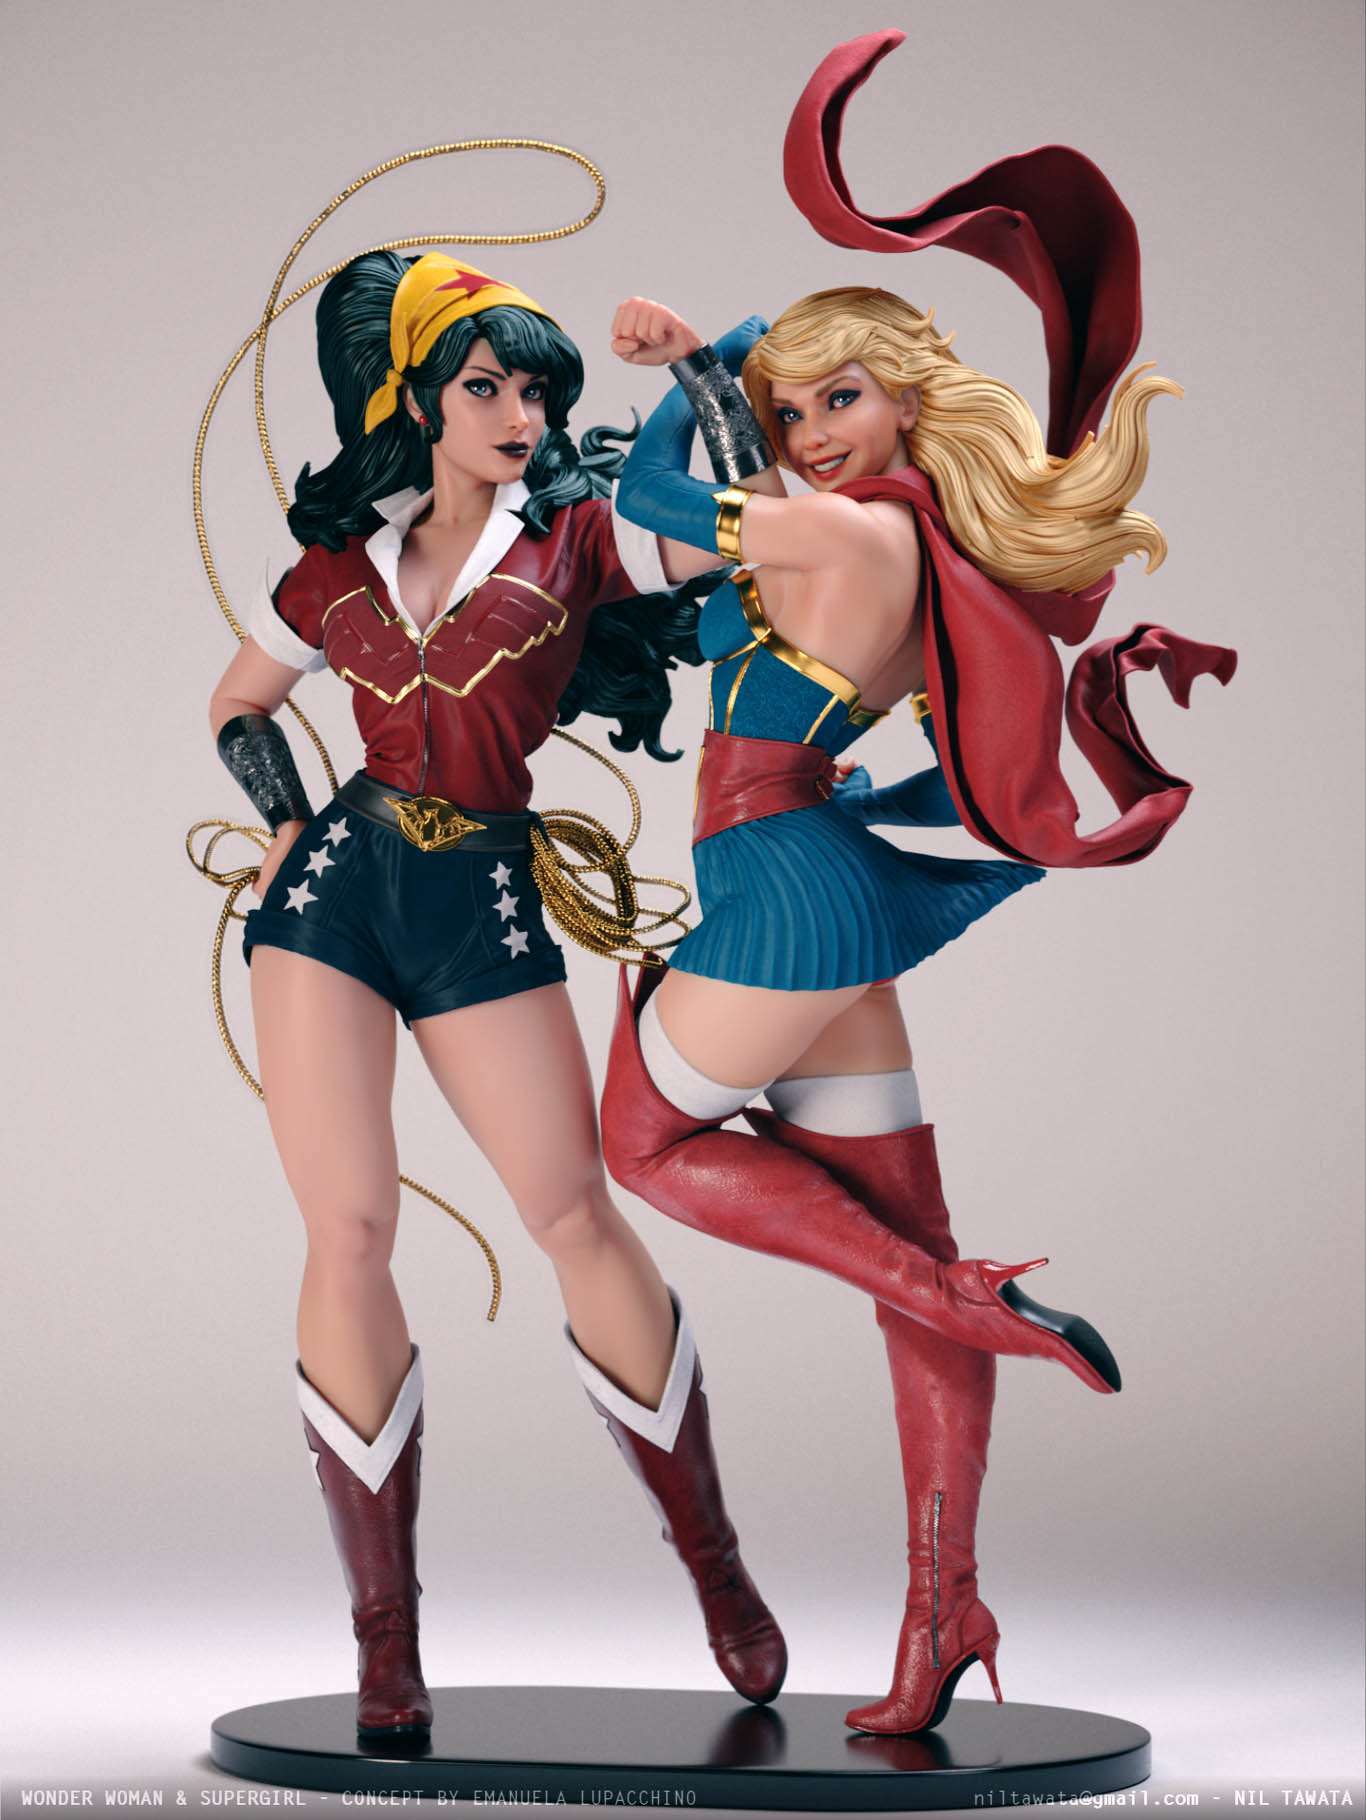 3d model character supergirl wonder woman